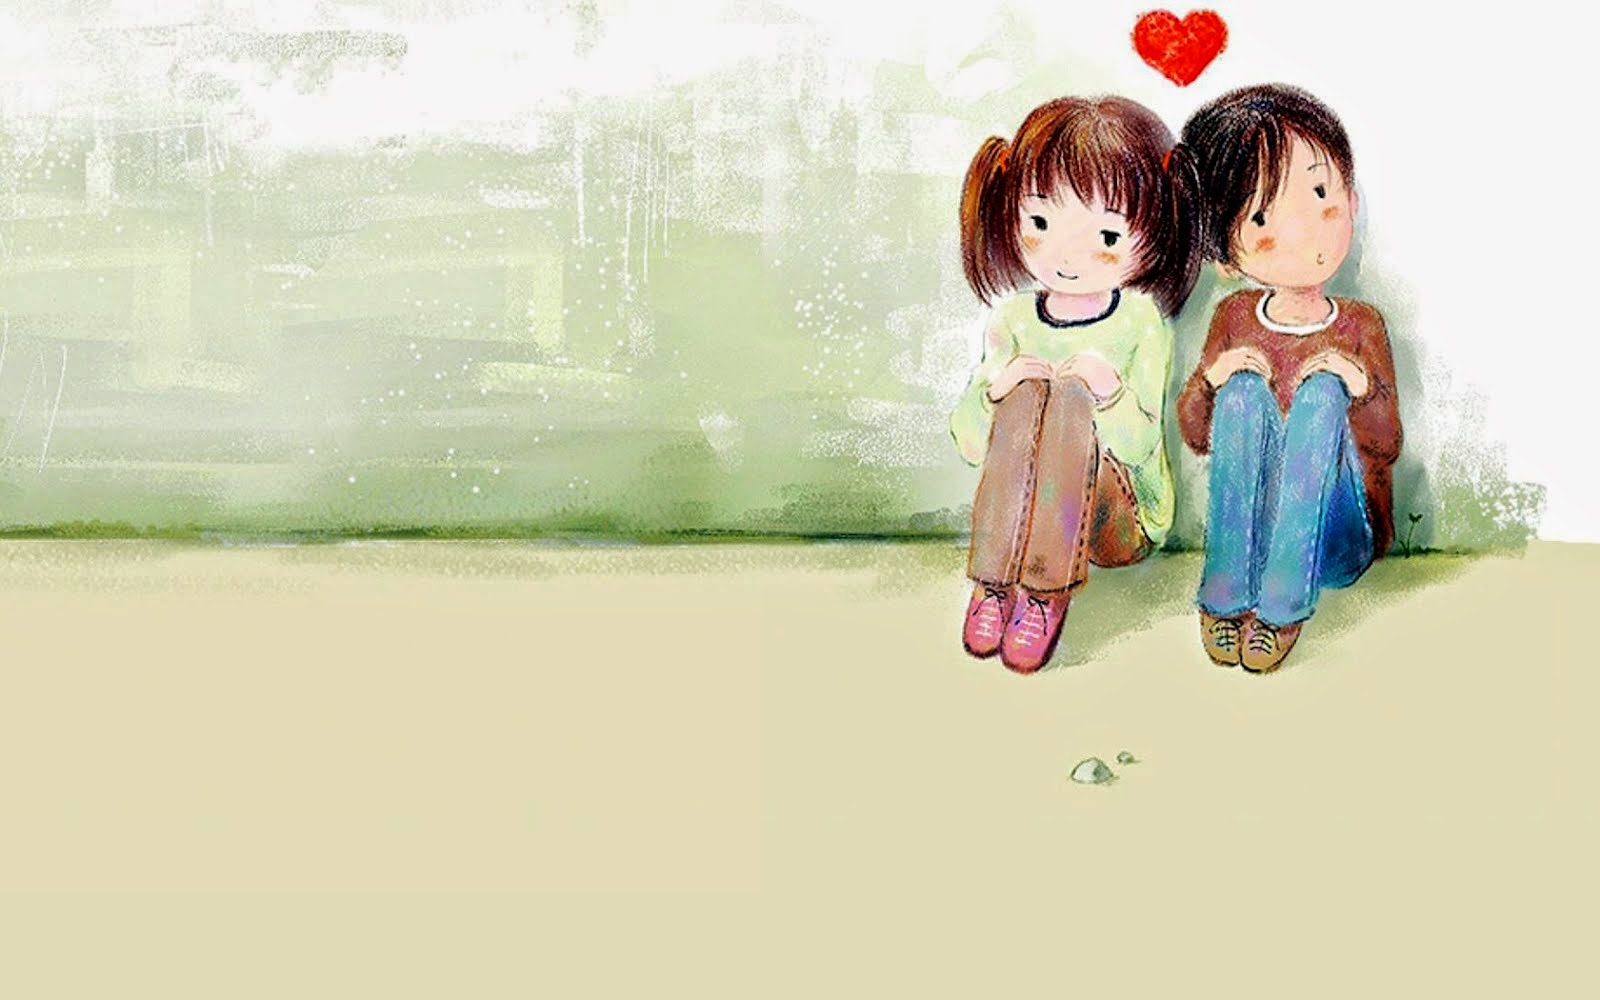 Love couple Wallpaper Hd cartoon : cute Little cartoon couple In Love HD Wallpaper Best Love HD Wallpapers